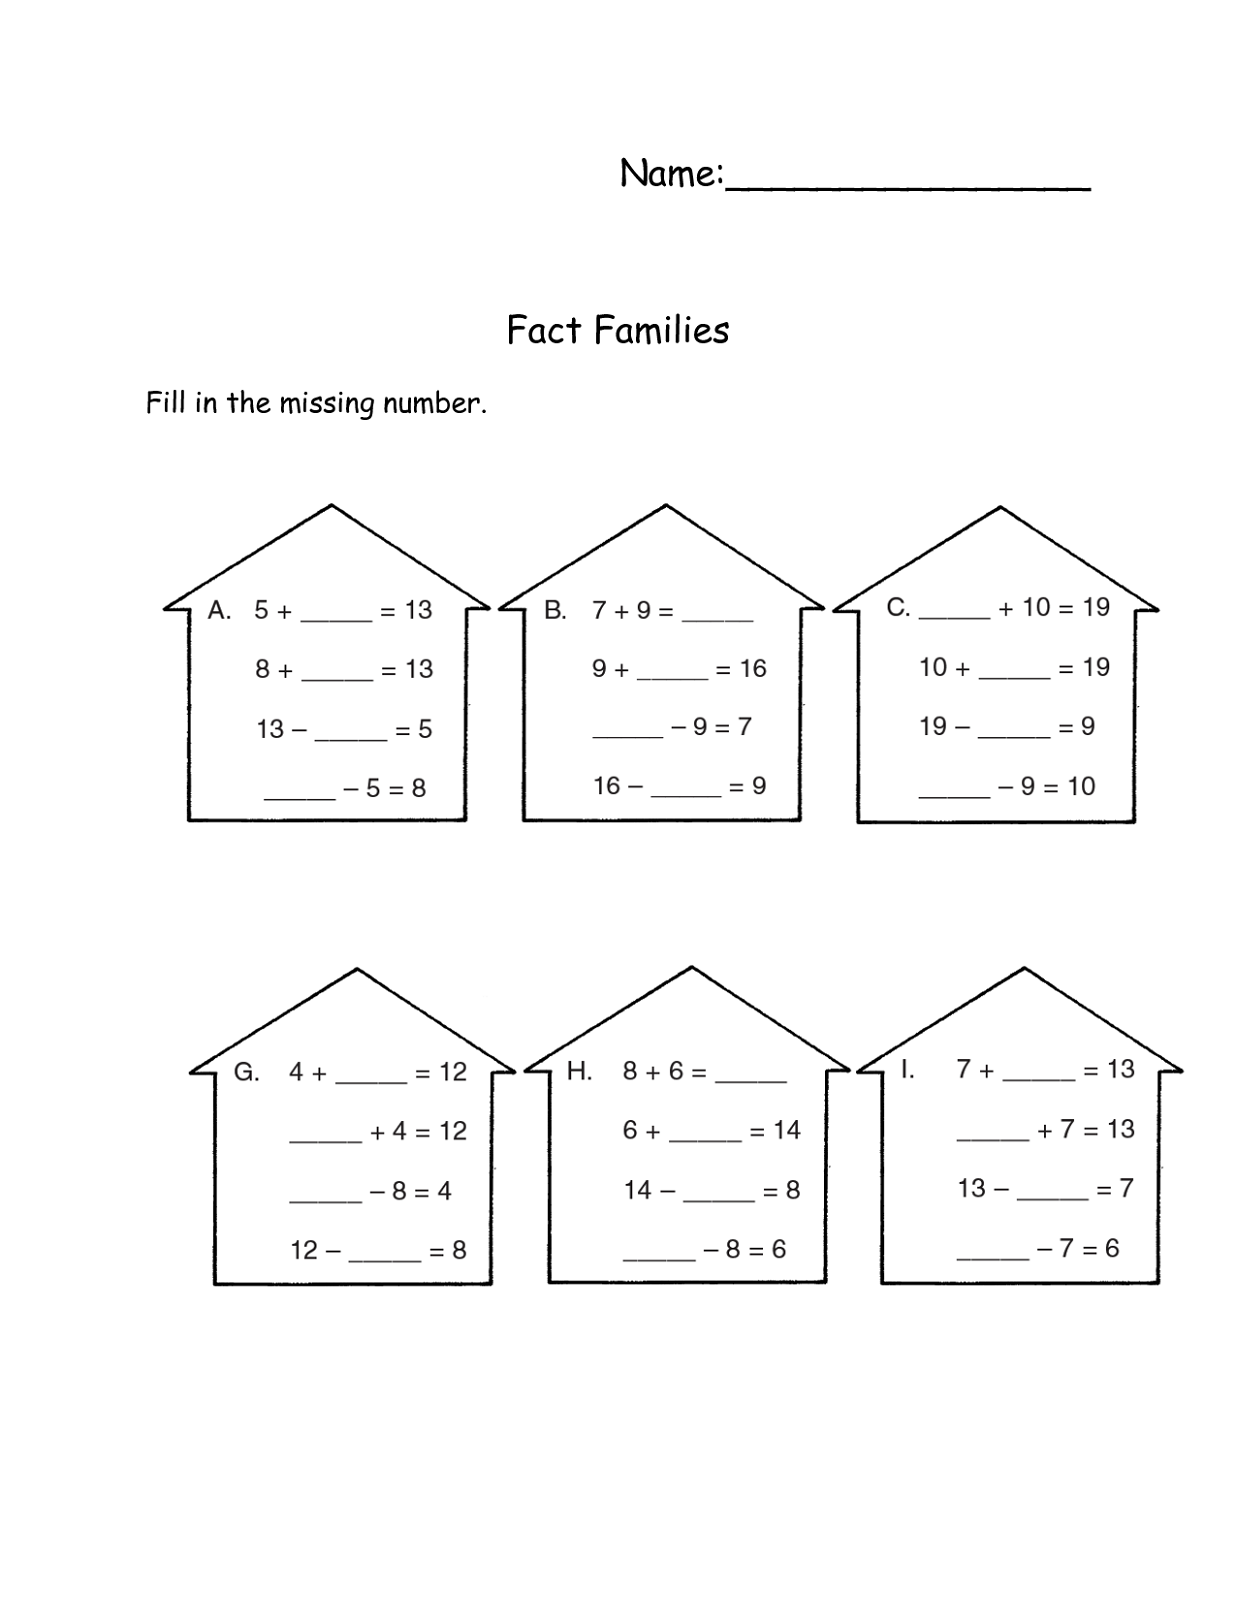 worksheet Fact Family Worksheets For 1st Grade fact family worksheets to print activity shelter worksheet missing